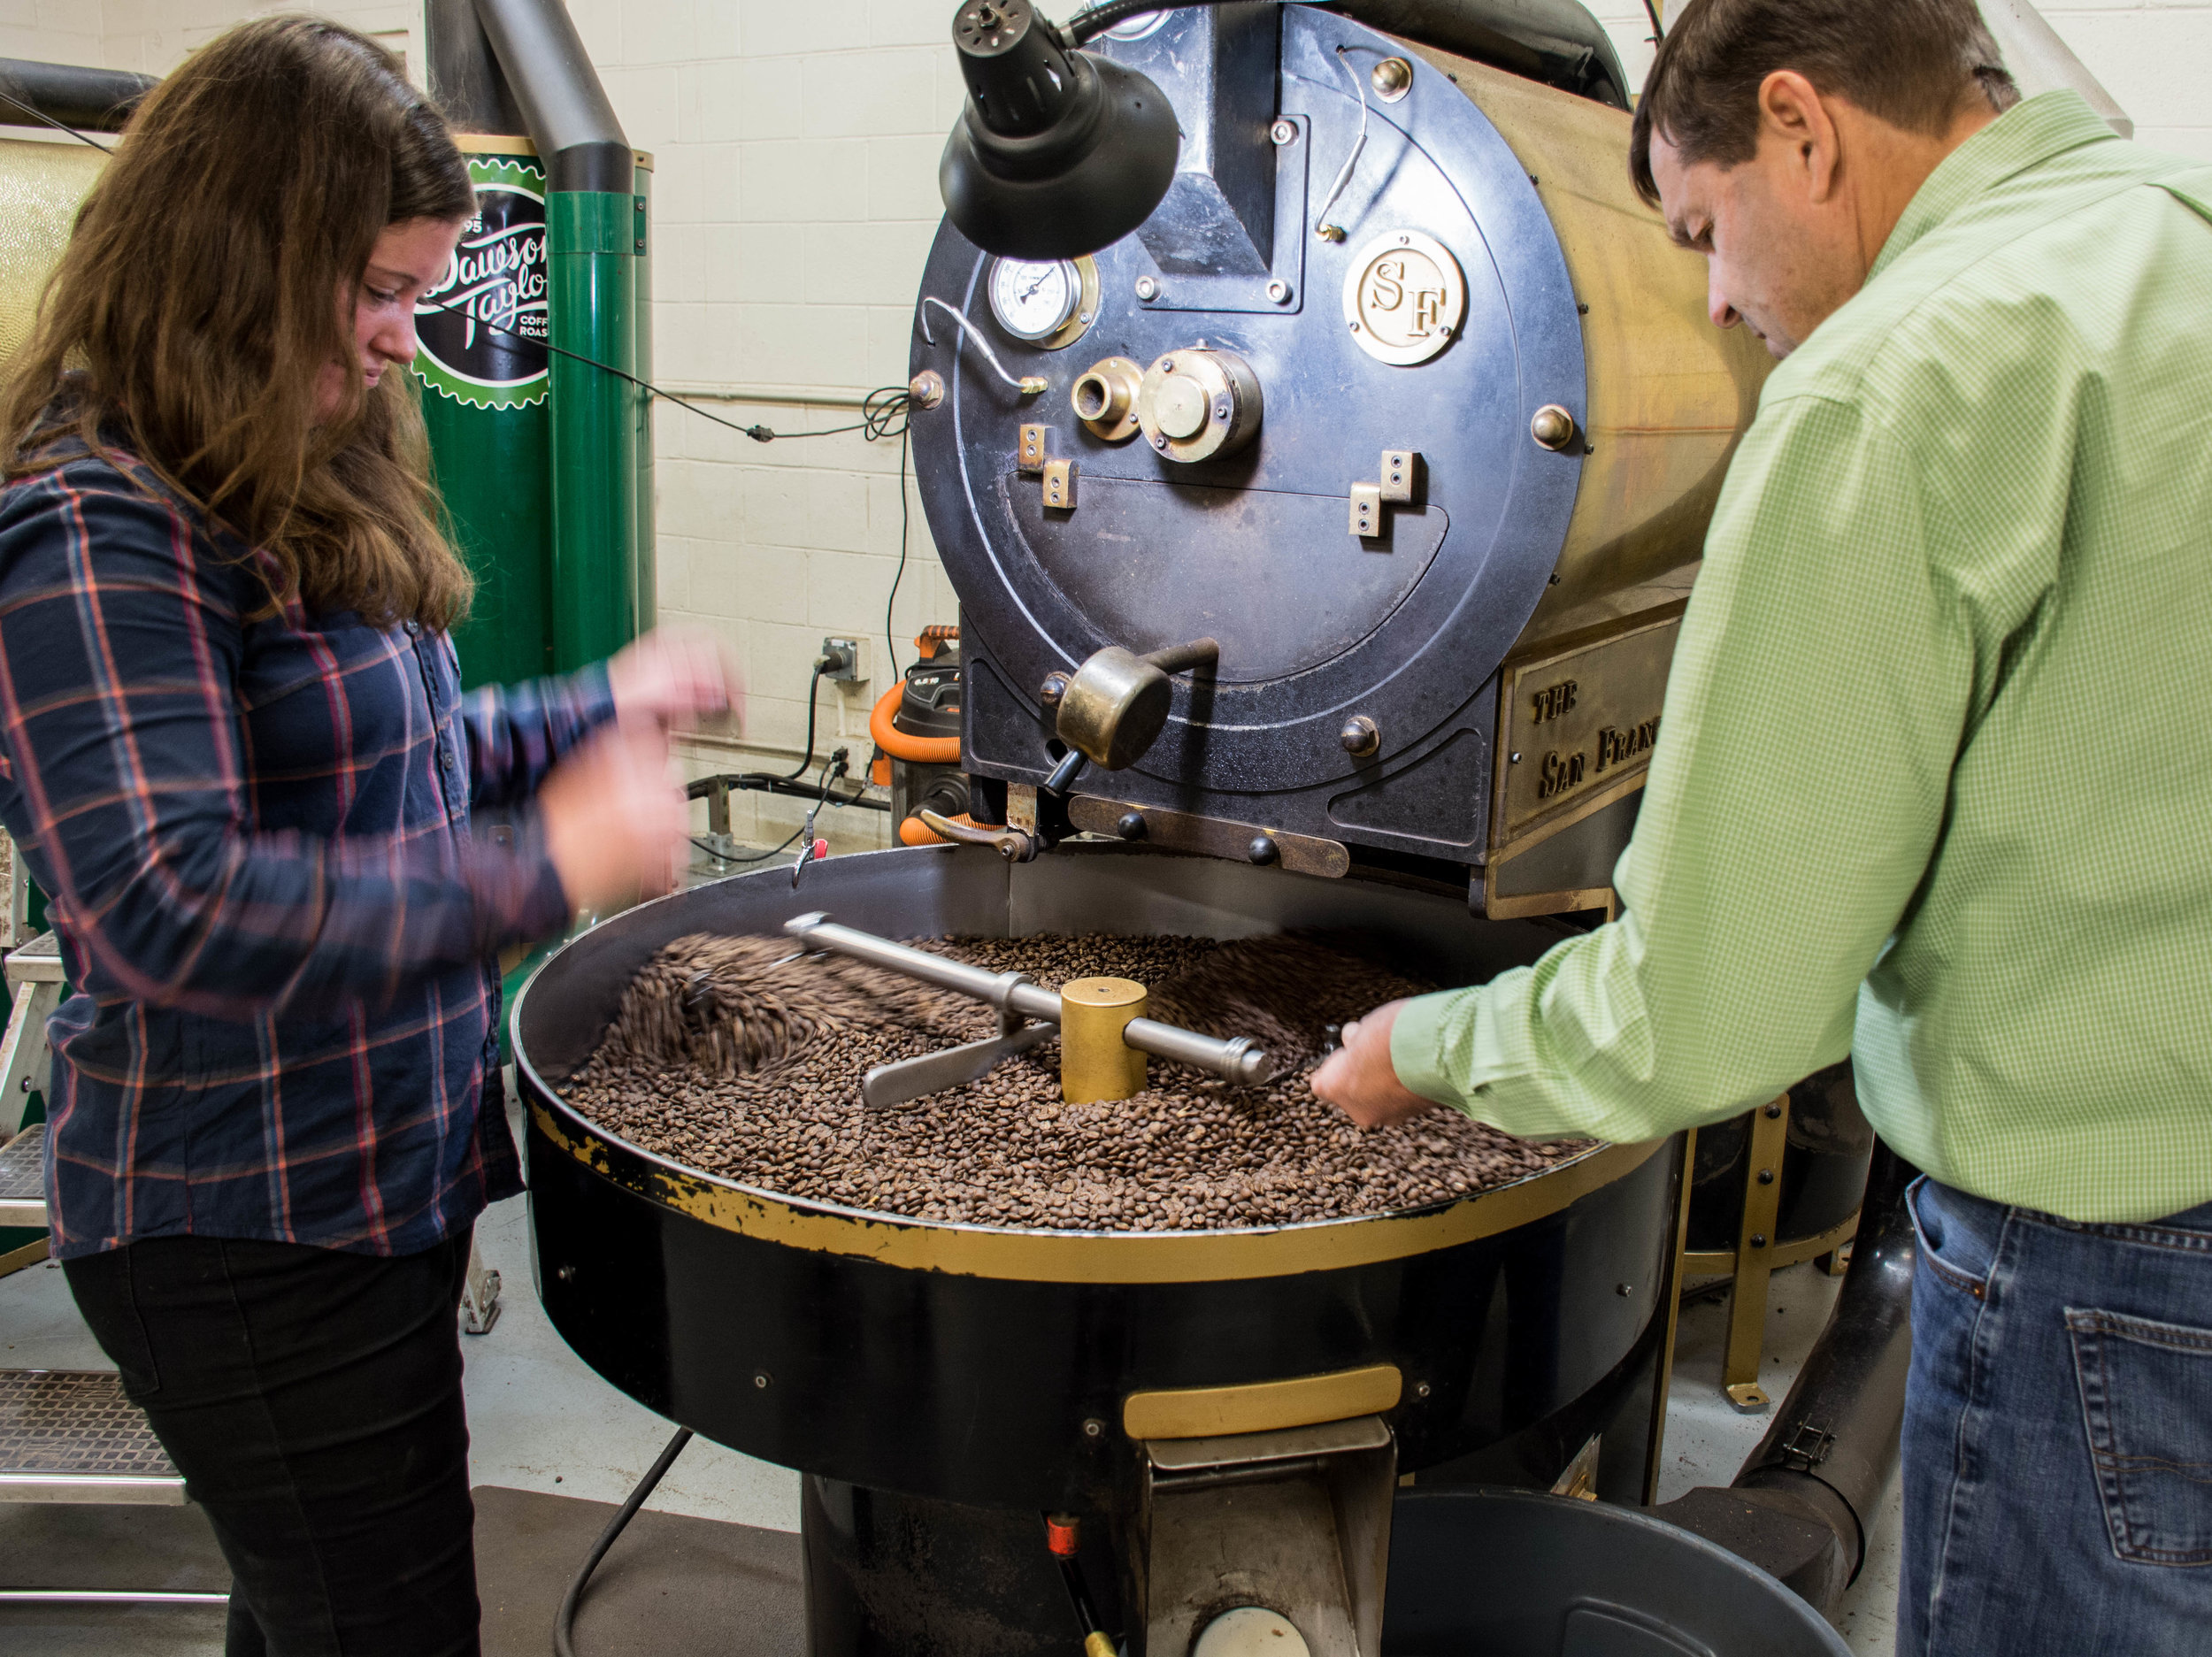 Checking the beans frequently ensures the perfect roast